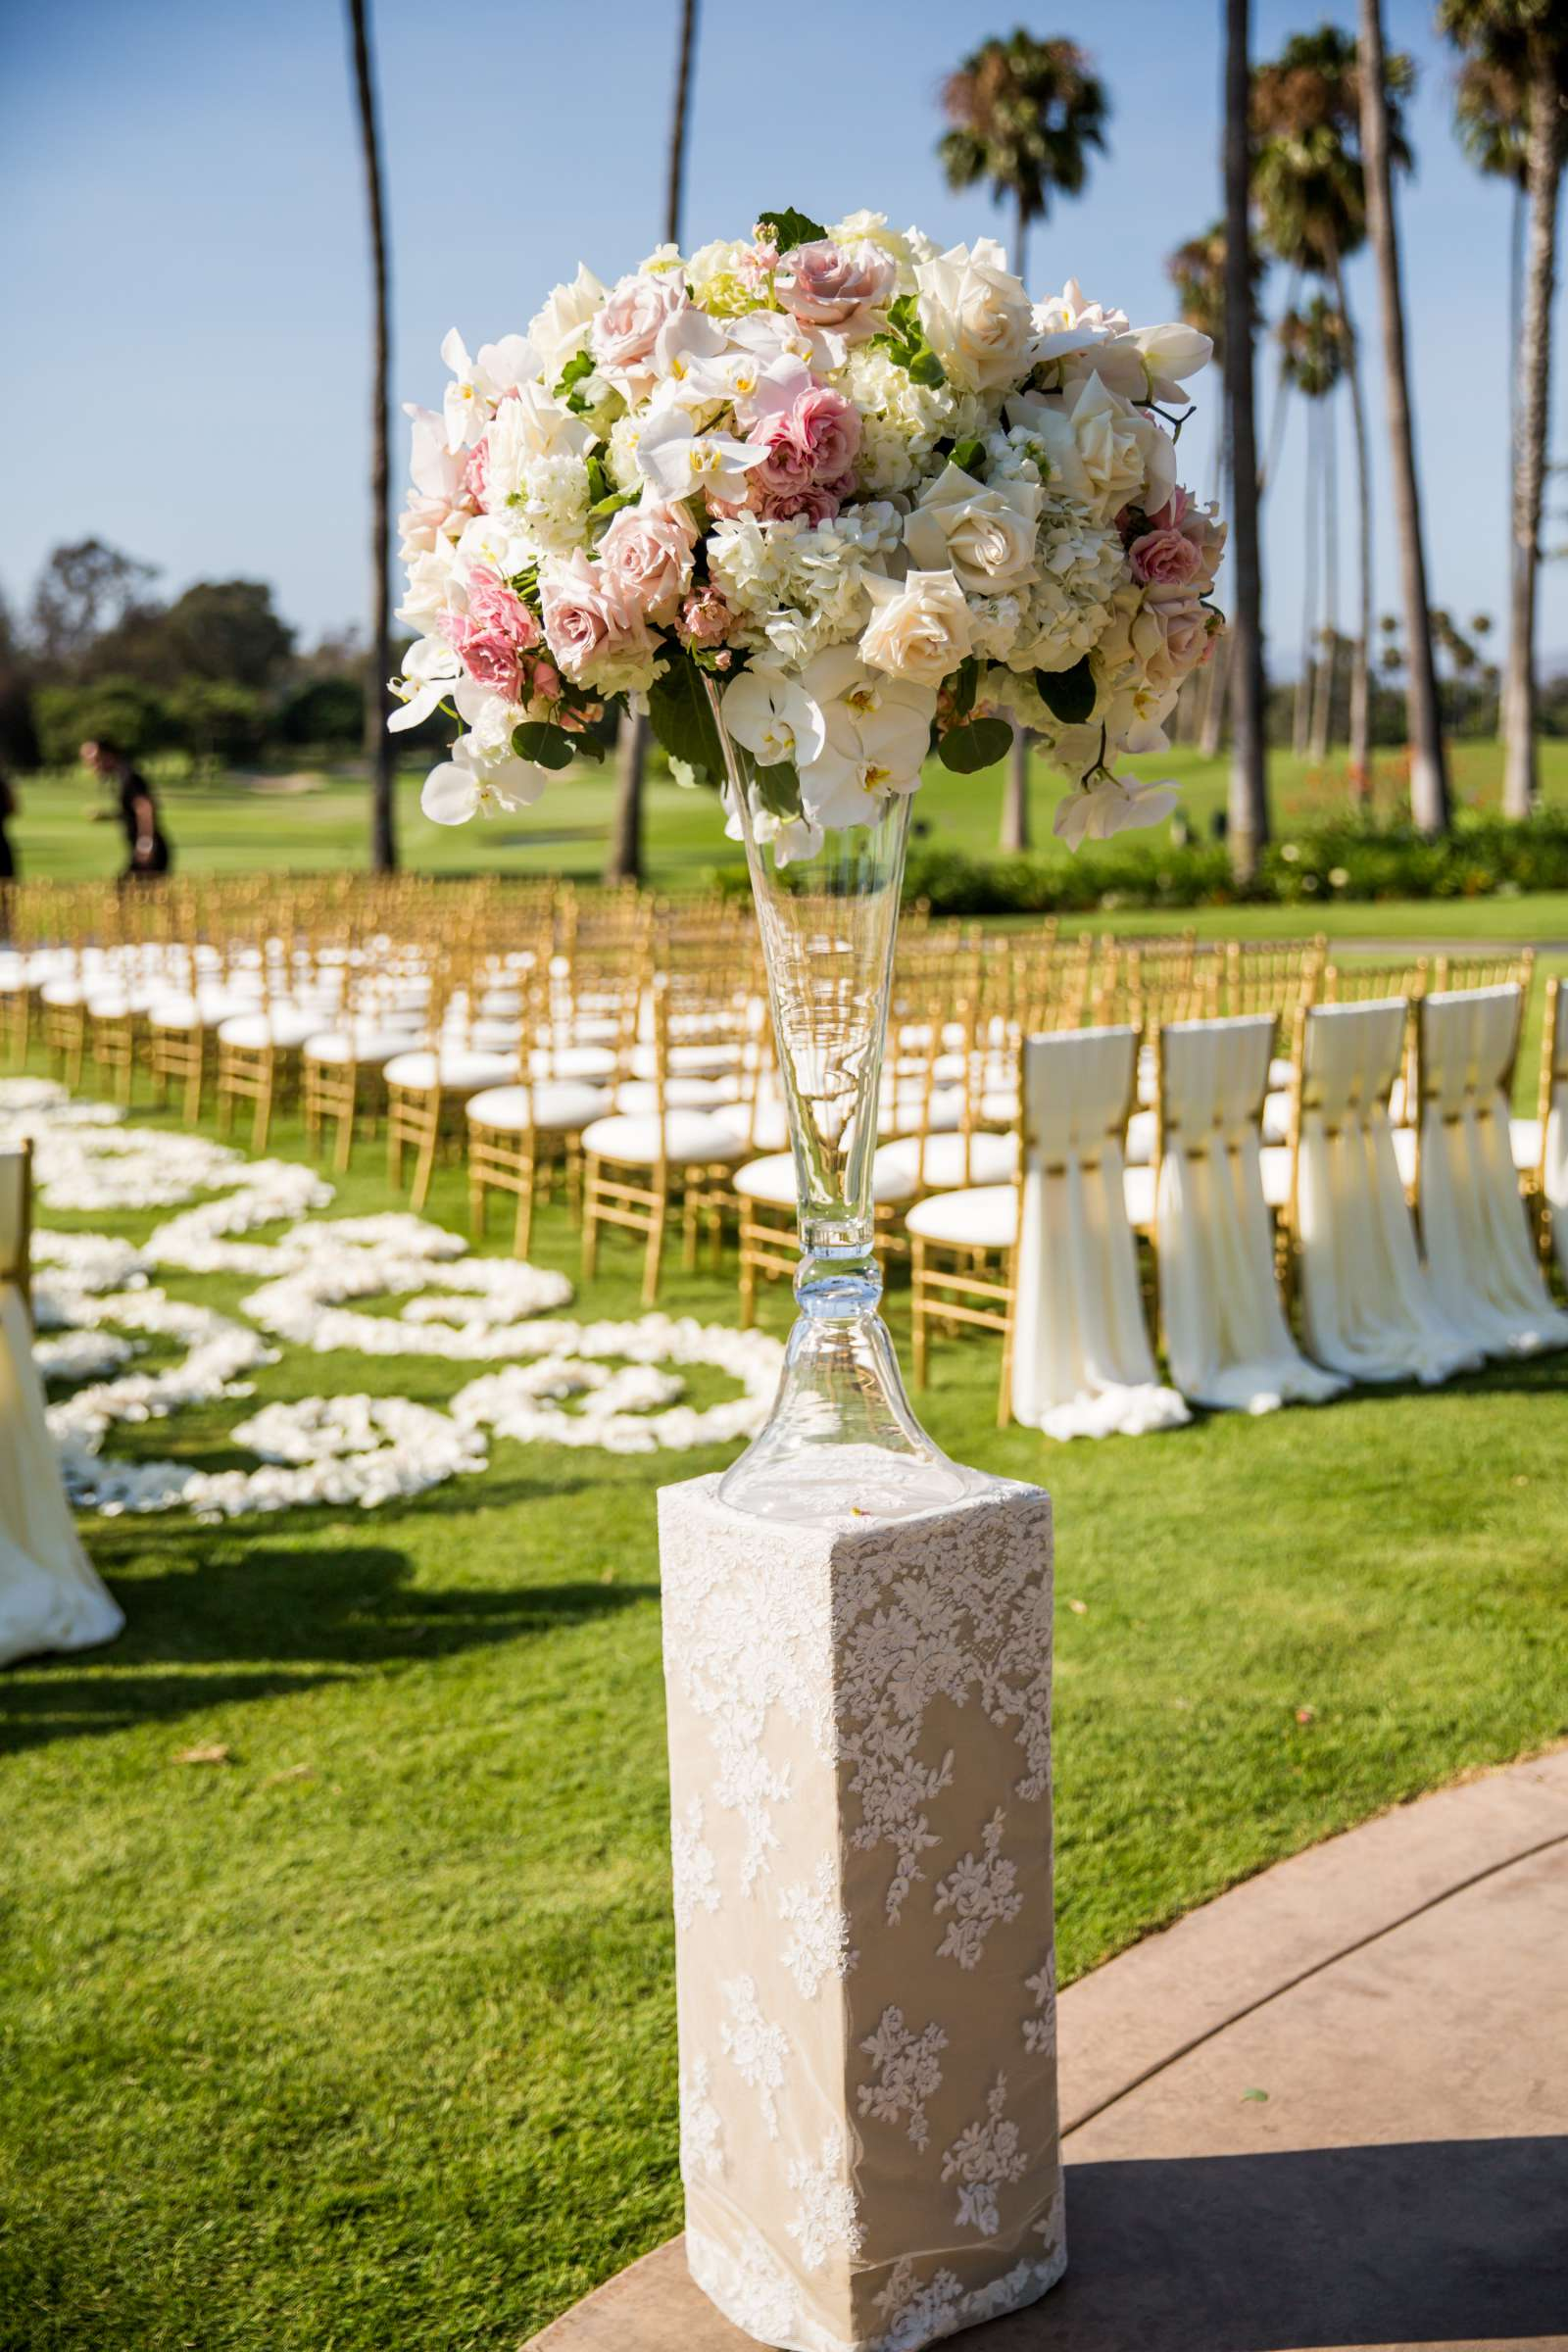 Fairbanks Ranch Country Club Wedding coordinated by Monarch Weddings, Gabriella and Kyle Wedding Photo #173 by True Photography